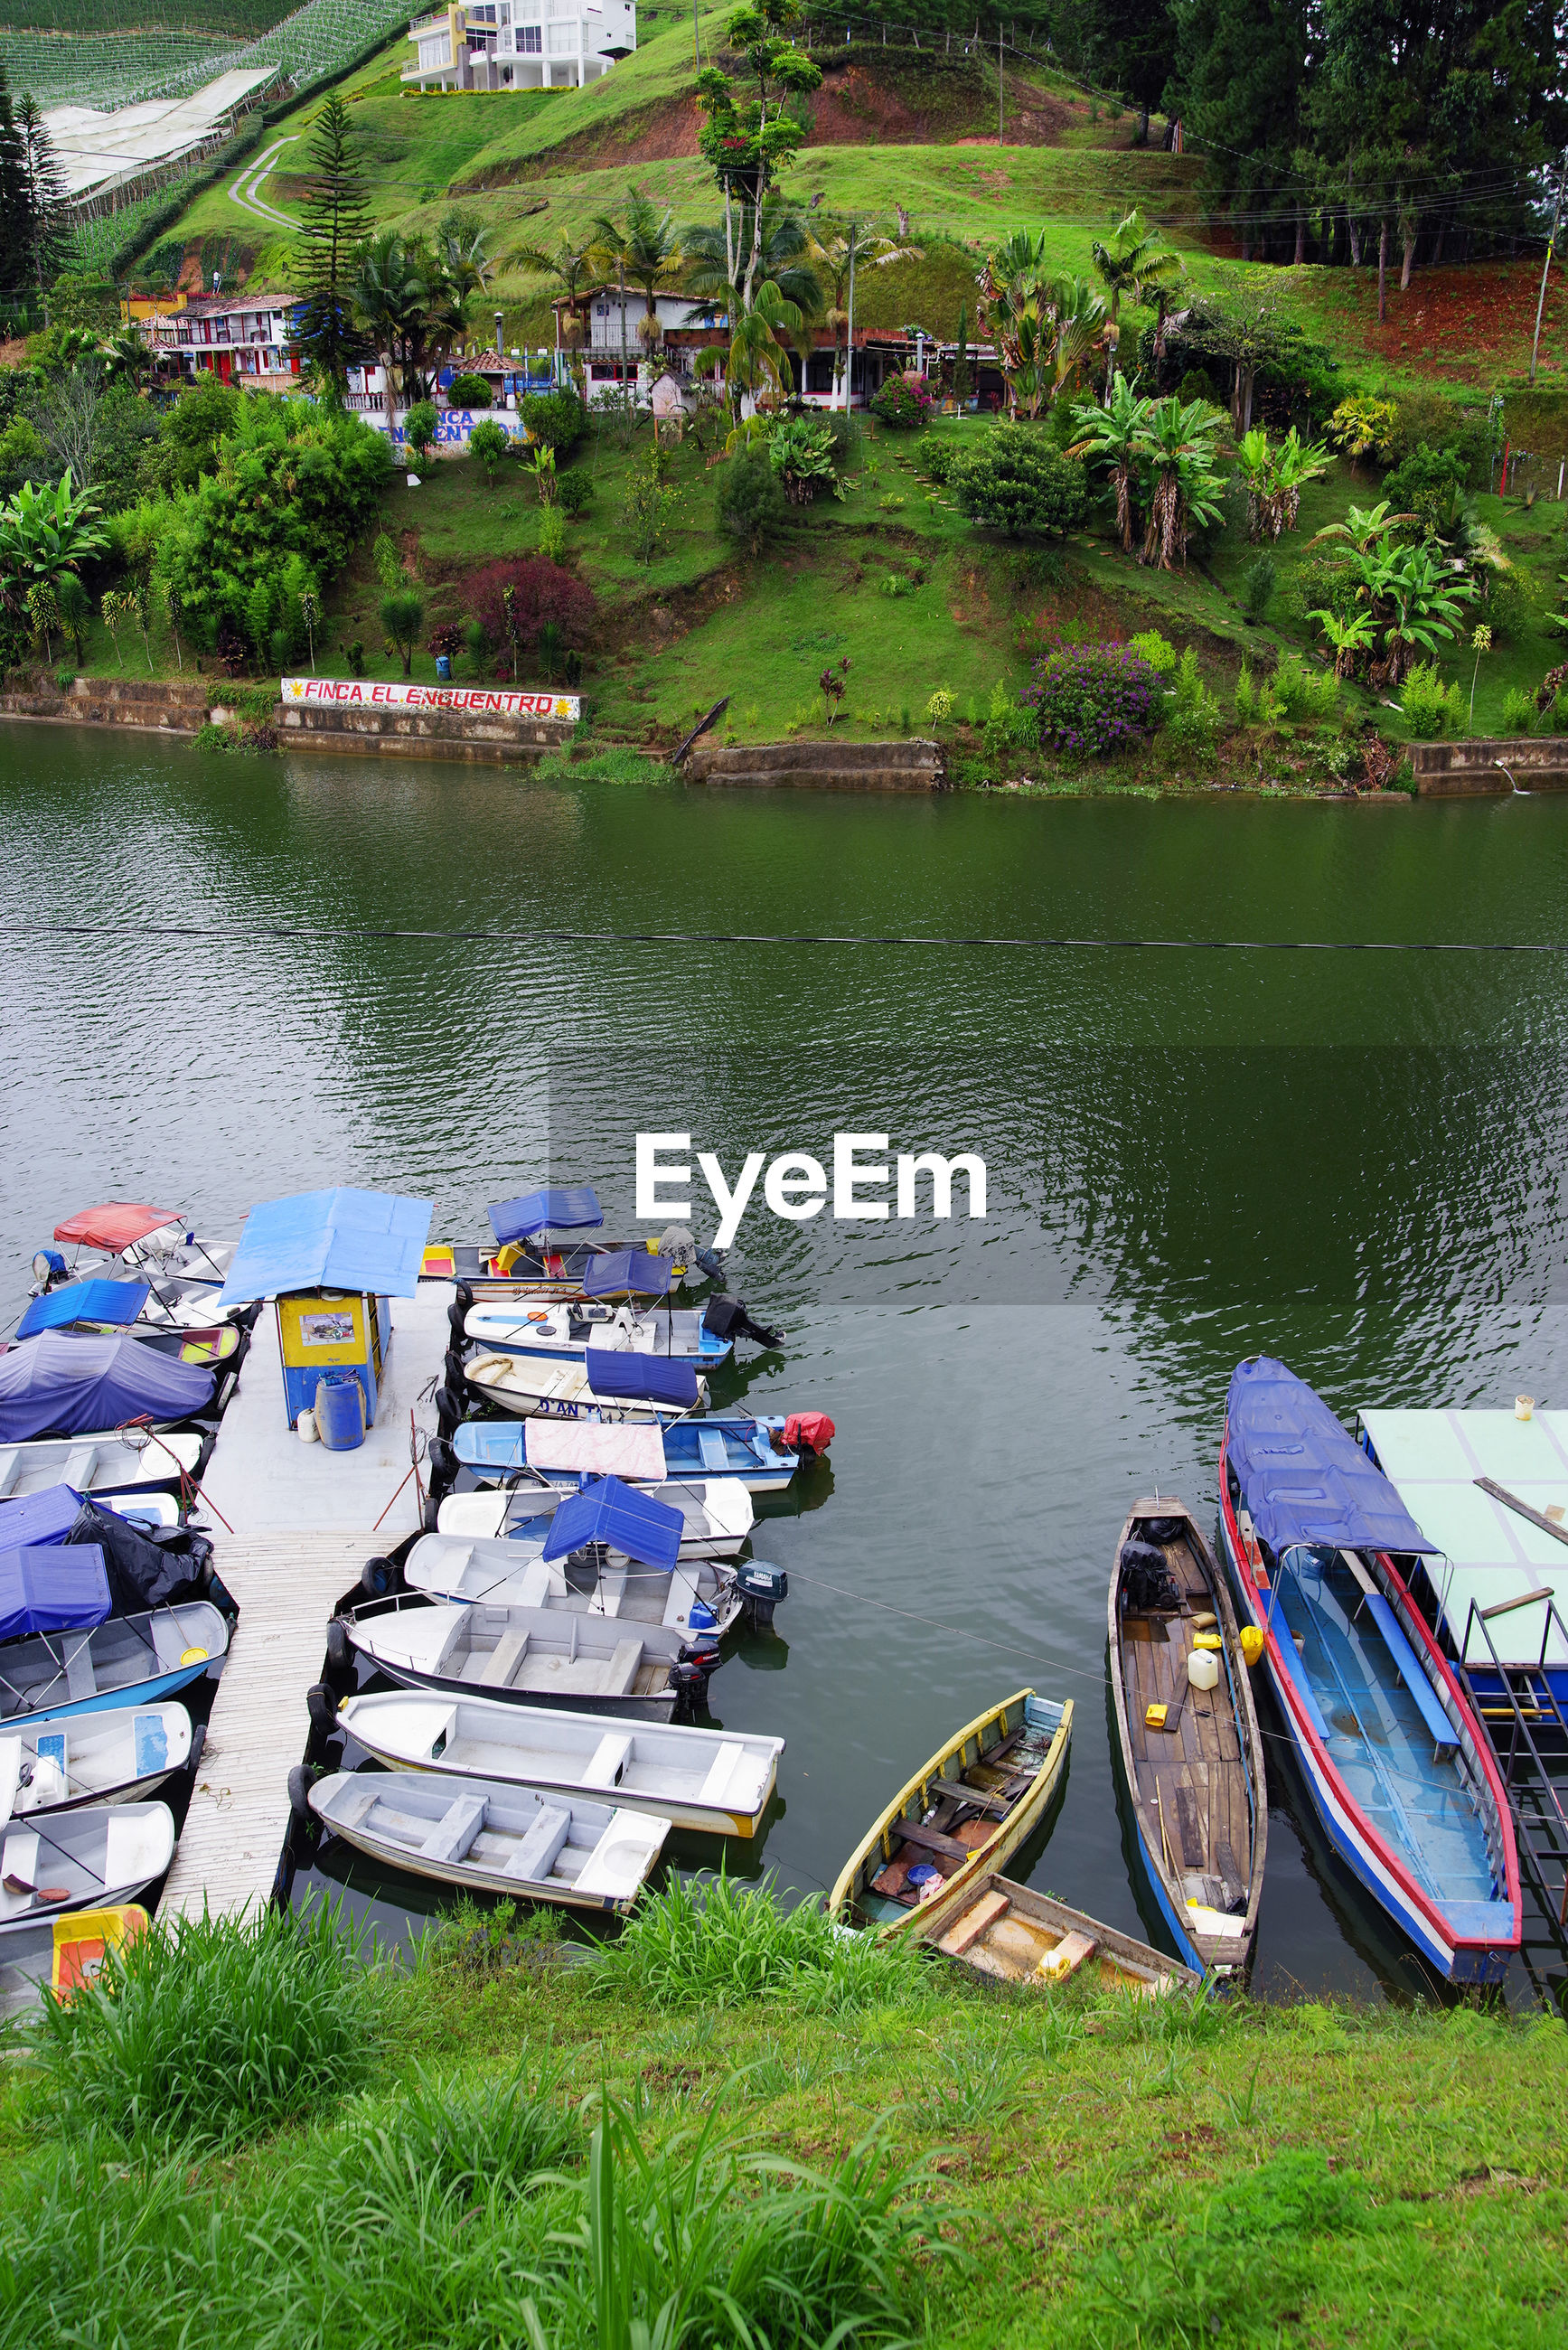 HIGH ANGLE VIEW OF BOATS MOORED BY LAKE